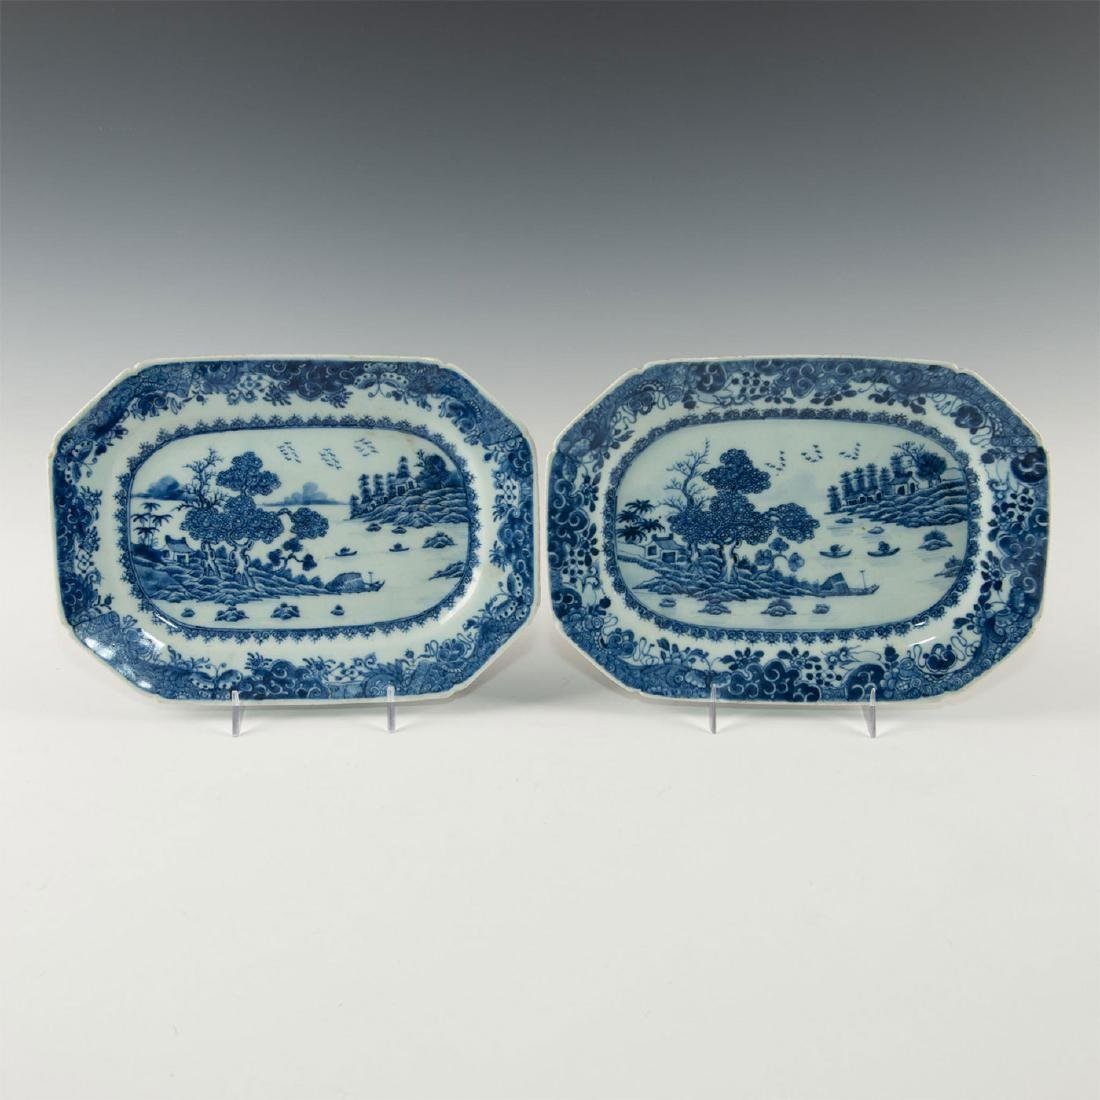 TWO BLUE WHITE CHINESE PORCELAIN SMALL PLATTERS IN